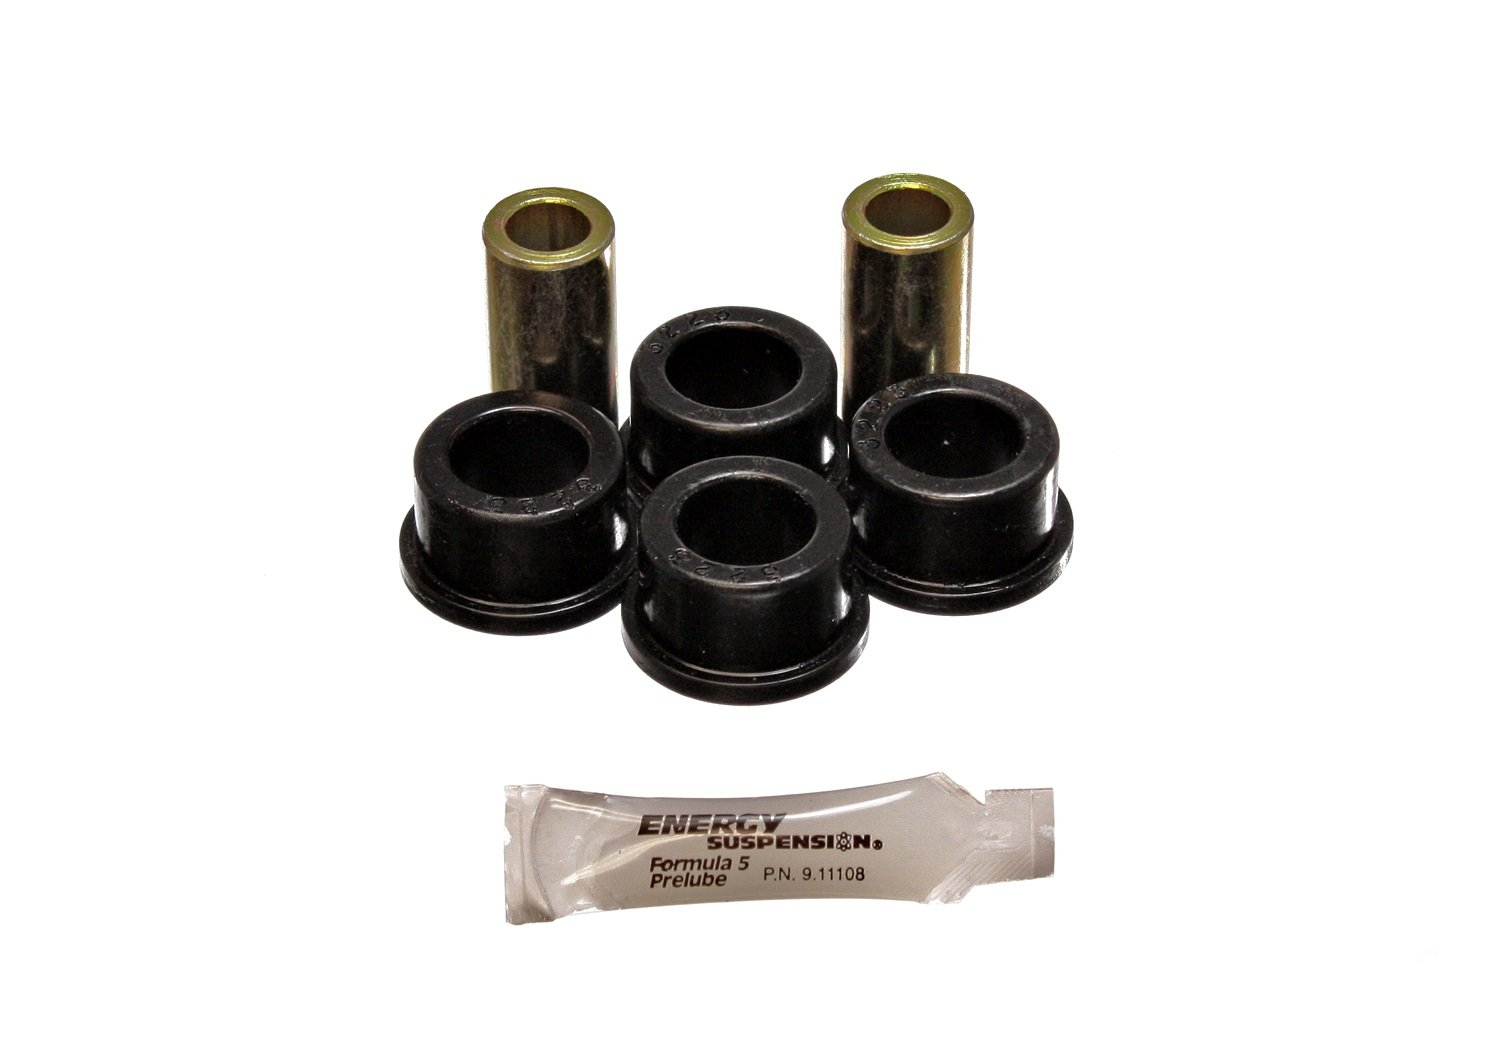 Energy Suspension ENE-7.3107G Lenkerkabelbuchsen-Set von Energy Suspension